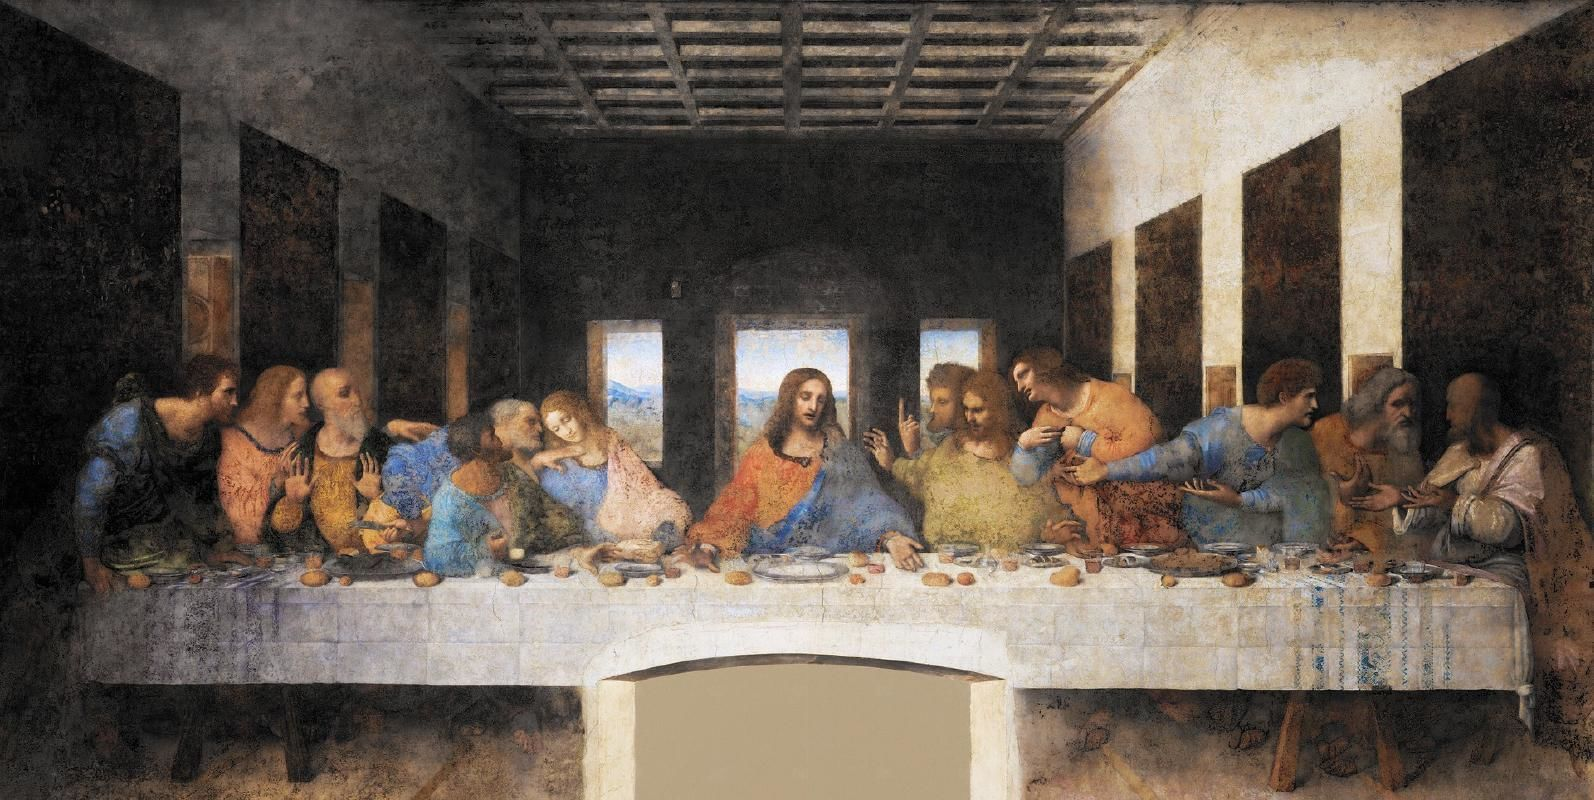 The Last Supper Skip the Line Tickets with Free Book